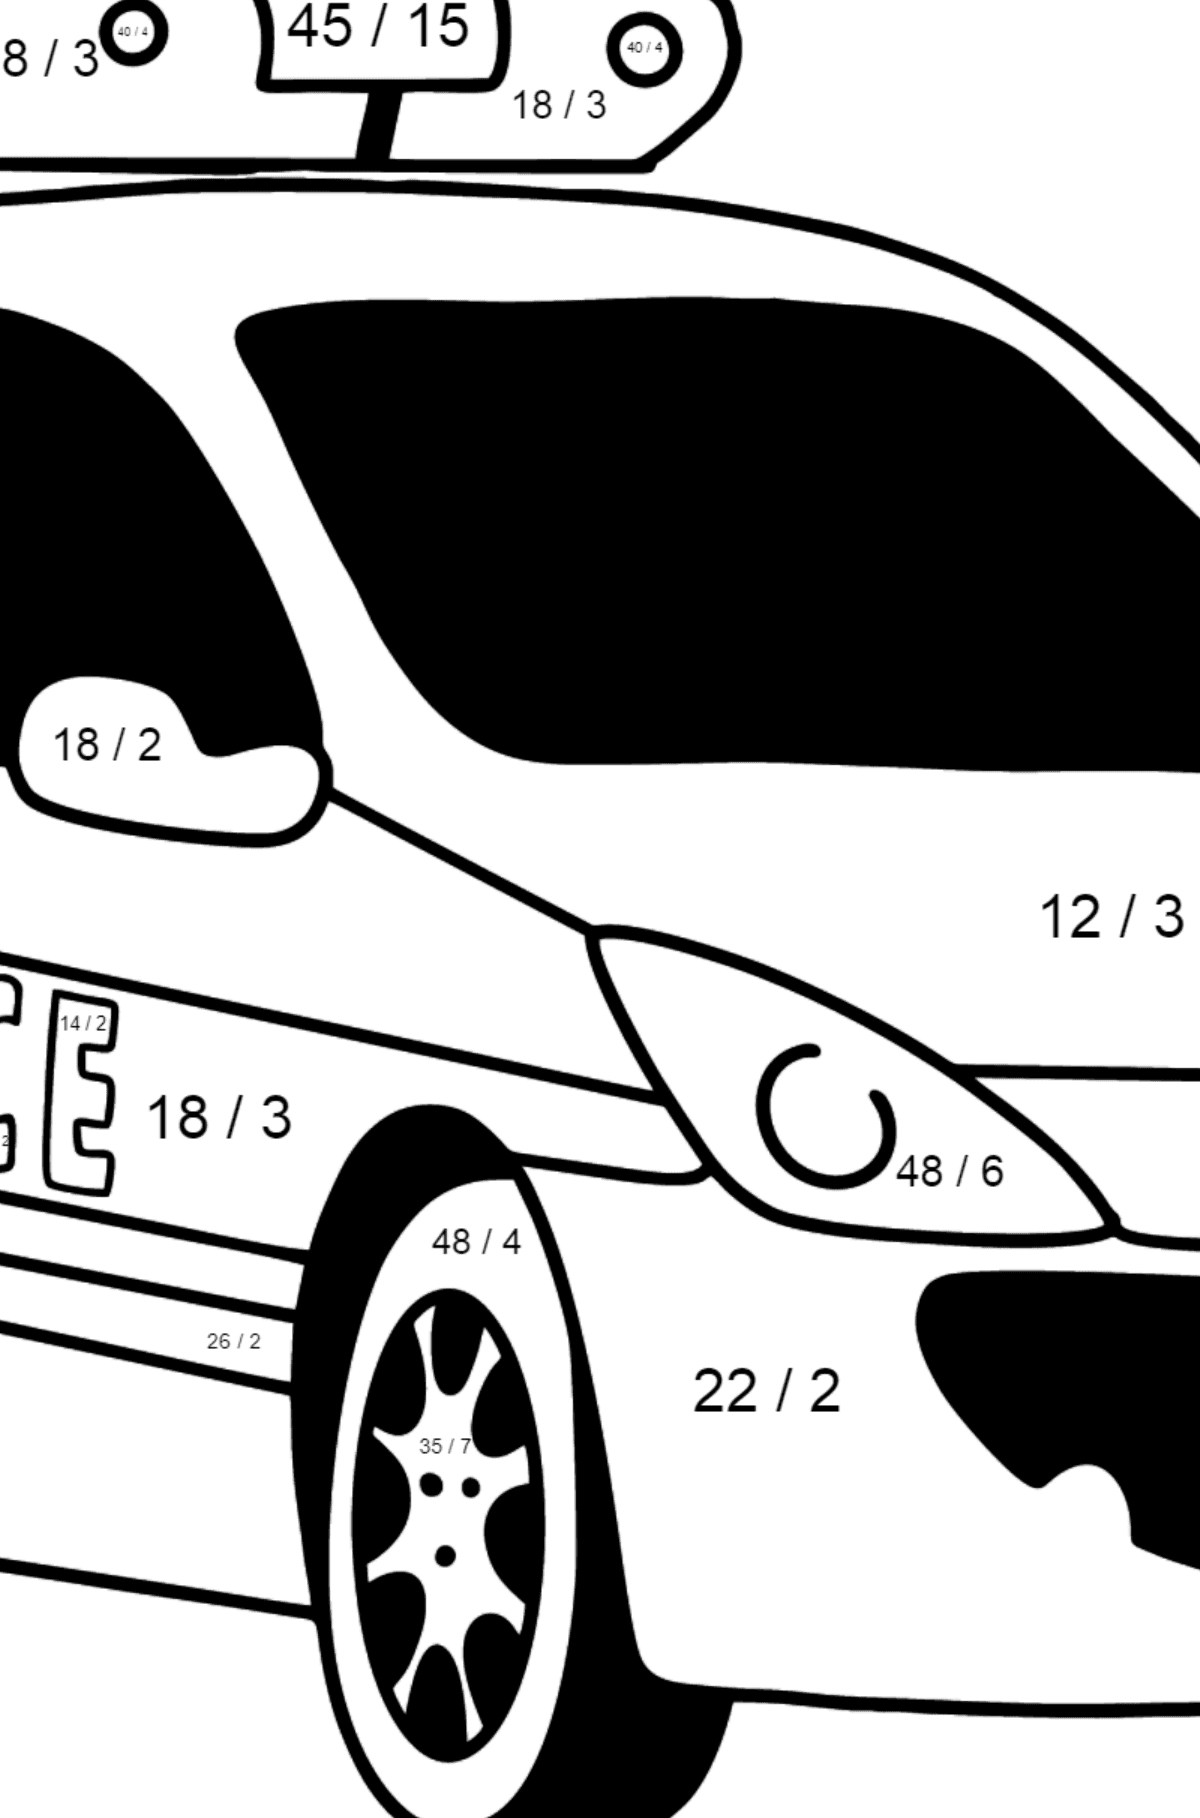 Police Car in France coloring page - Math Coloring - Division for Kids